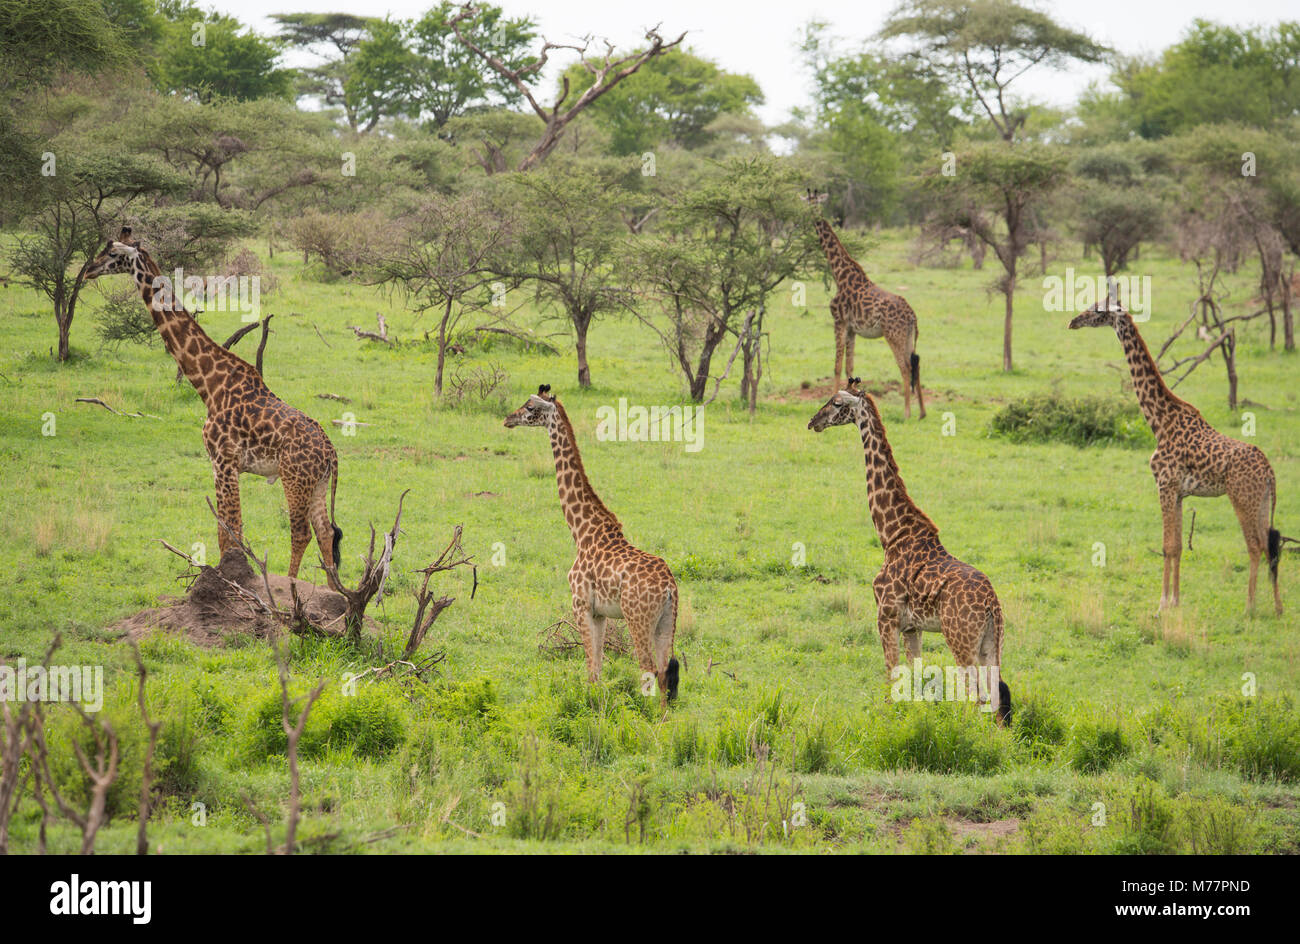 A group of Masai giraffes (Giraffa camelopardalis) in Serengeti National Park, UNESCO World Heritage Site, Tanzania, - Stock Image